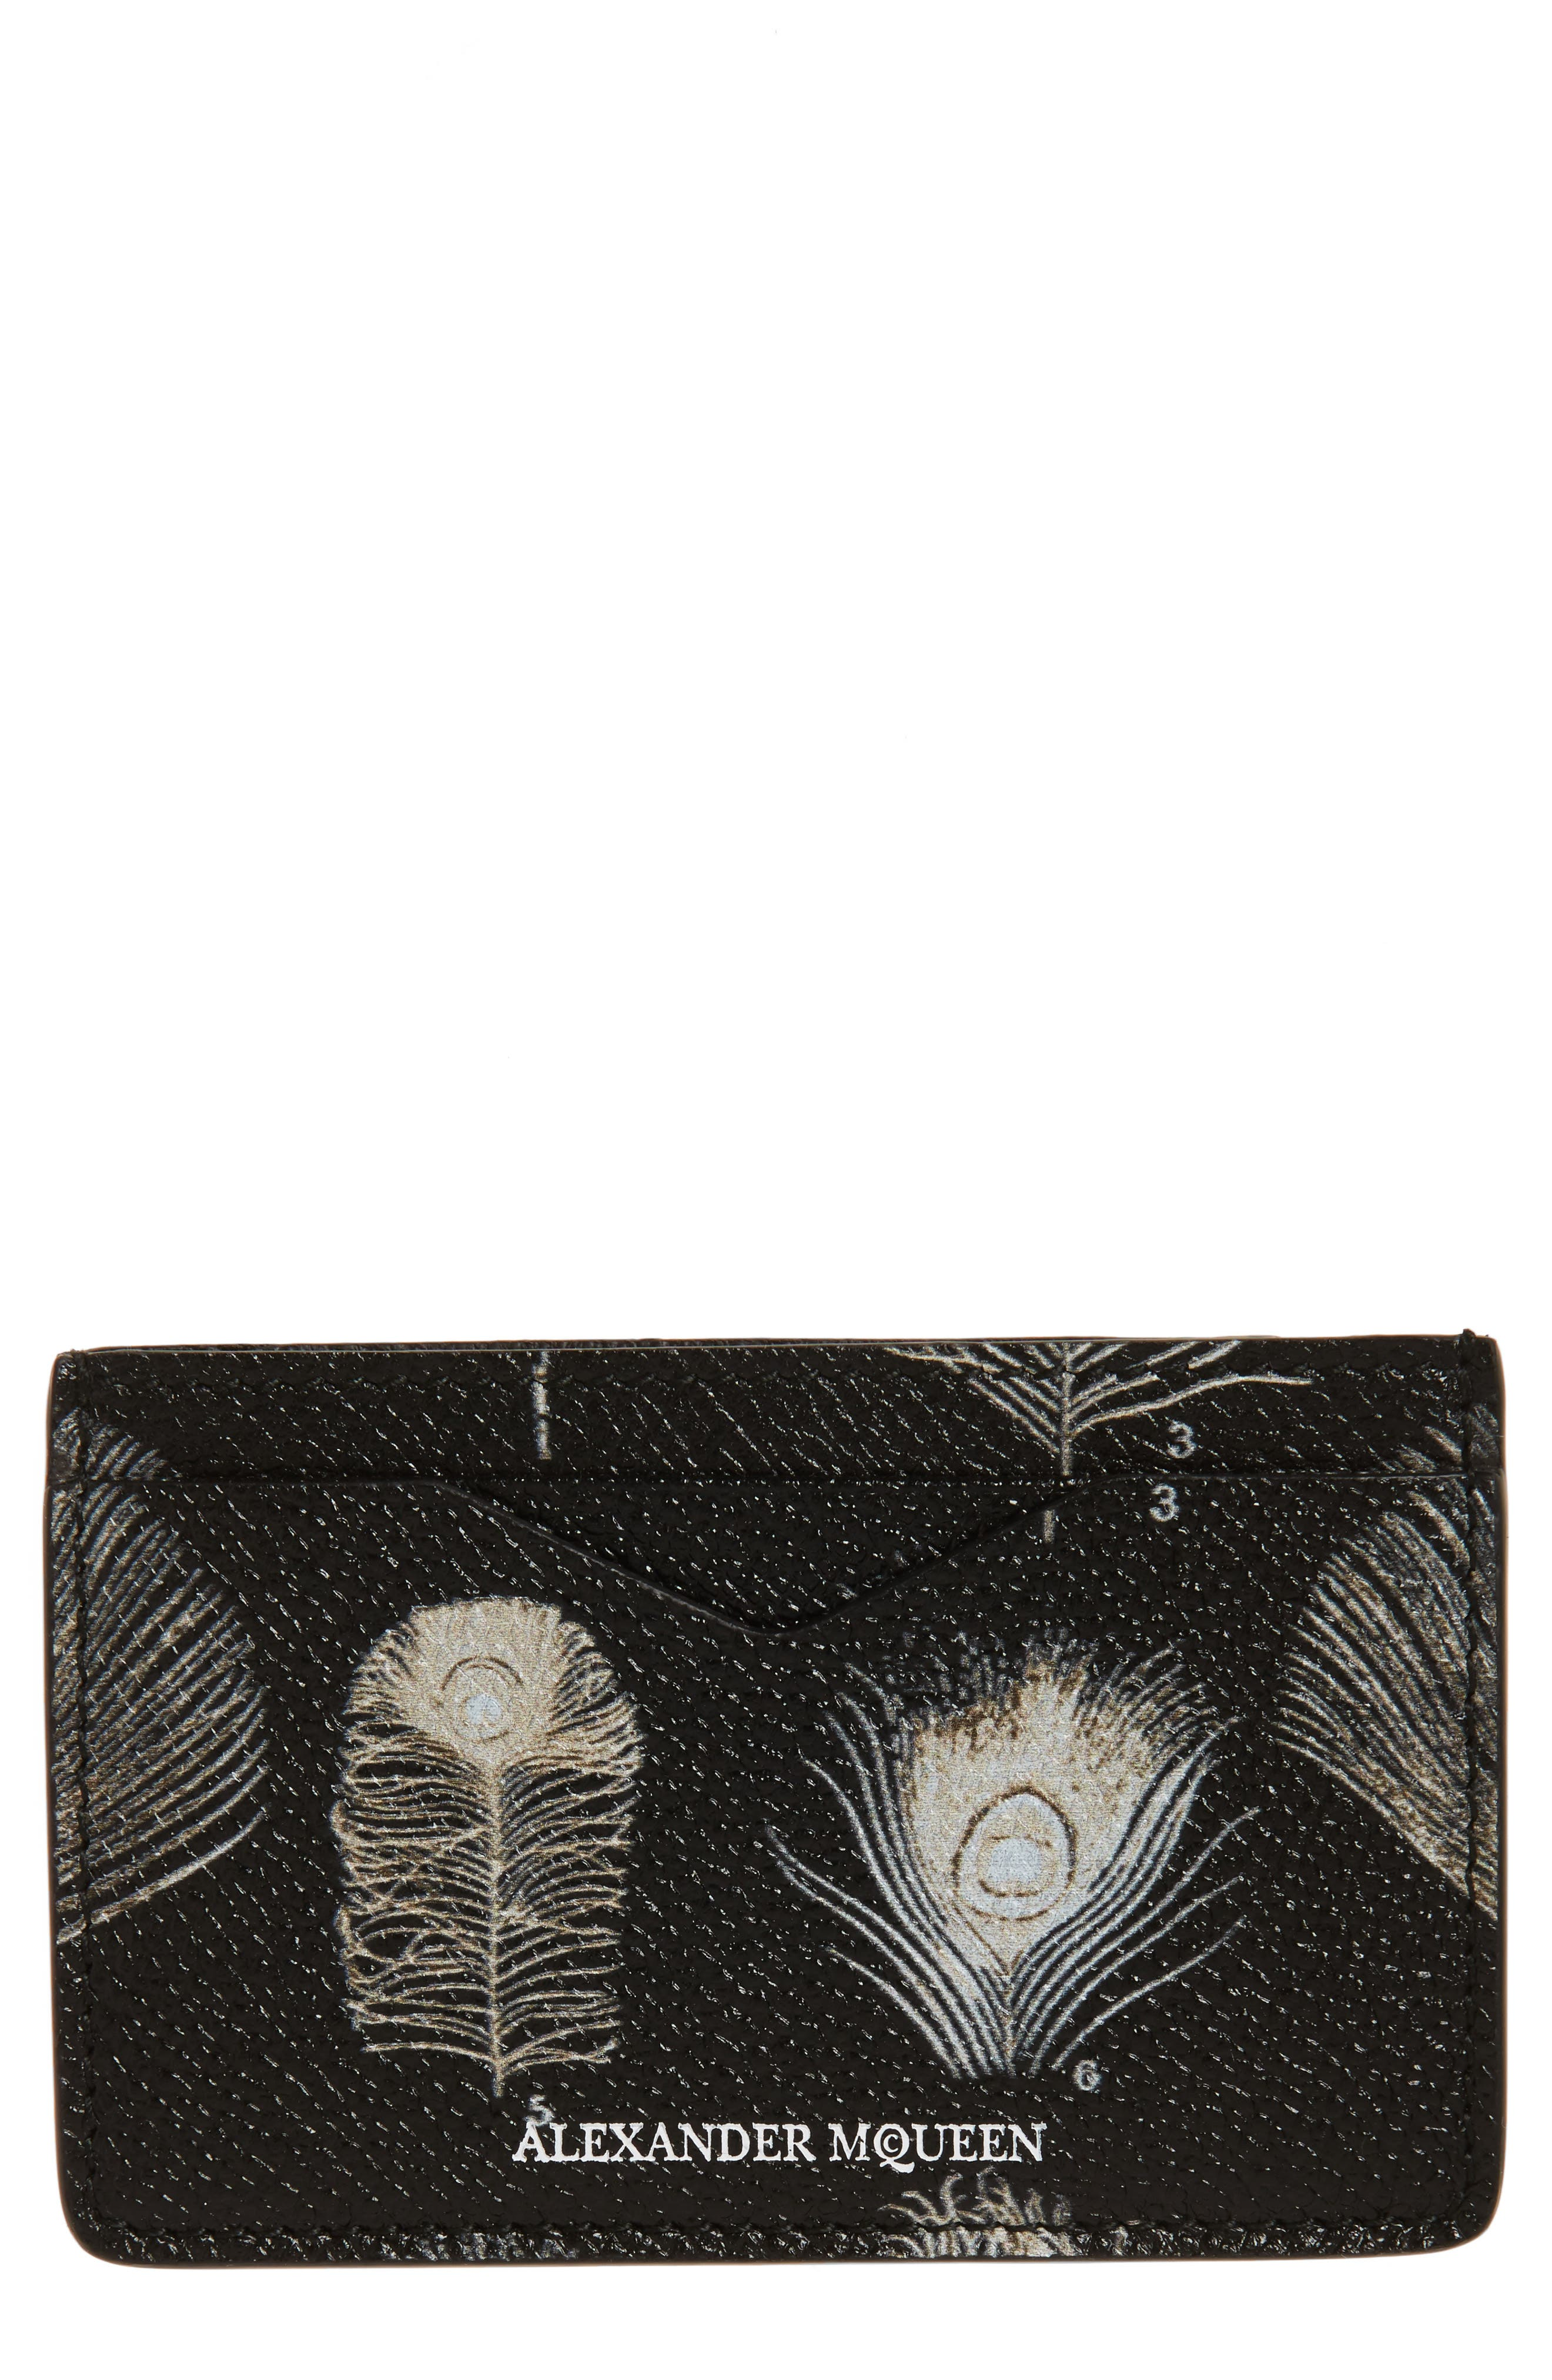 Peacock Feather Leather Card Case,                             Main thumbnail 1, color,                             011